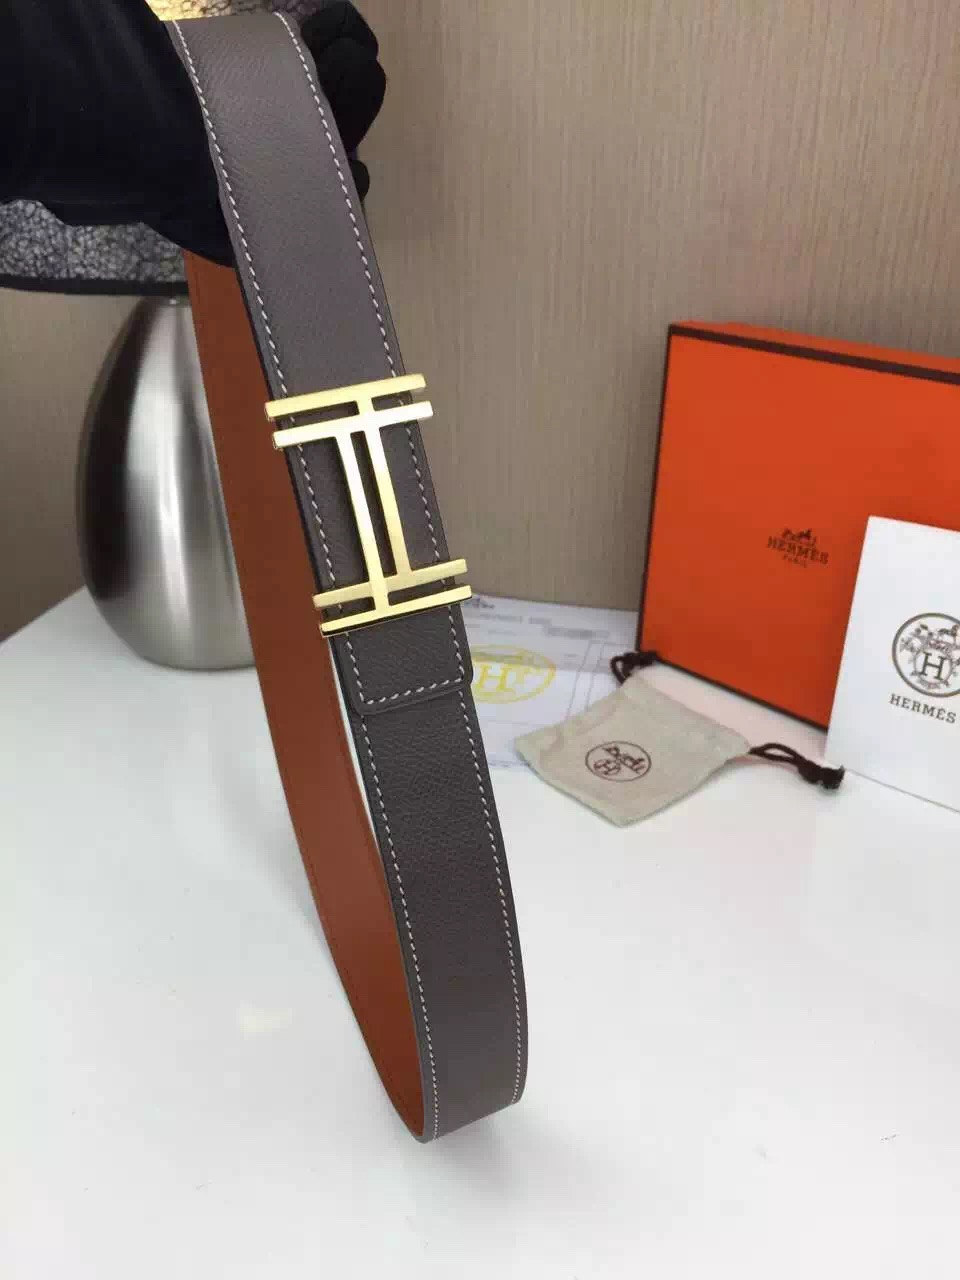 Hermes belt Wholesale Stainless steel gold buckle with gray palm print Many colors available